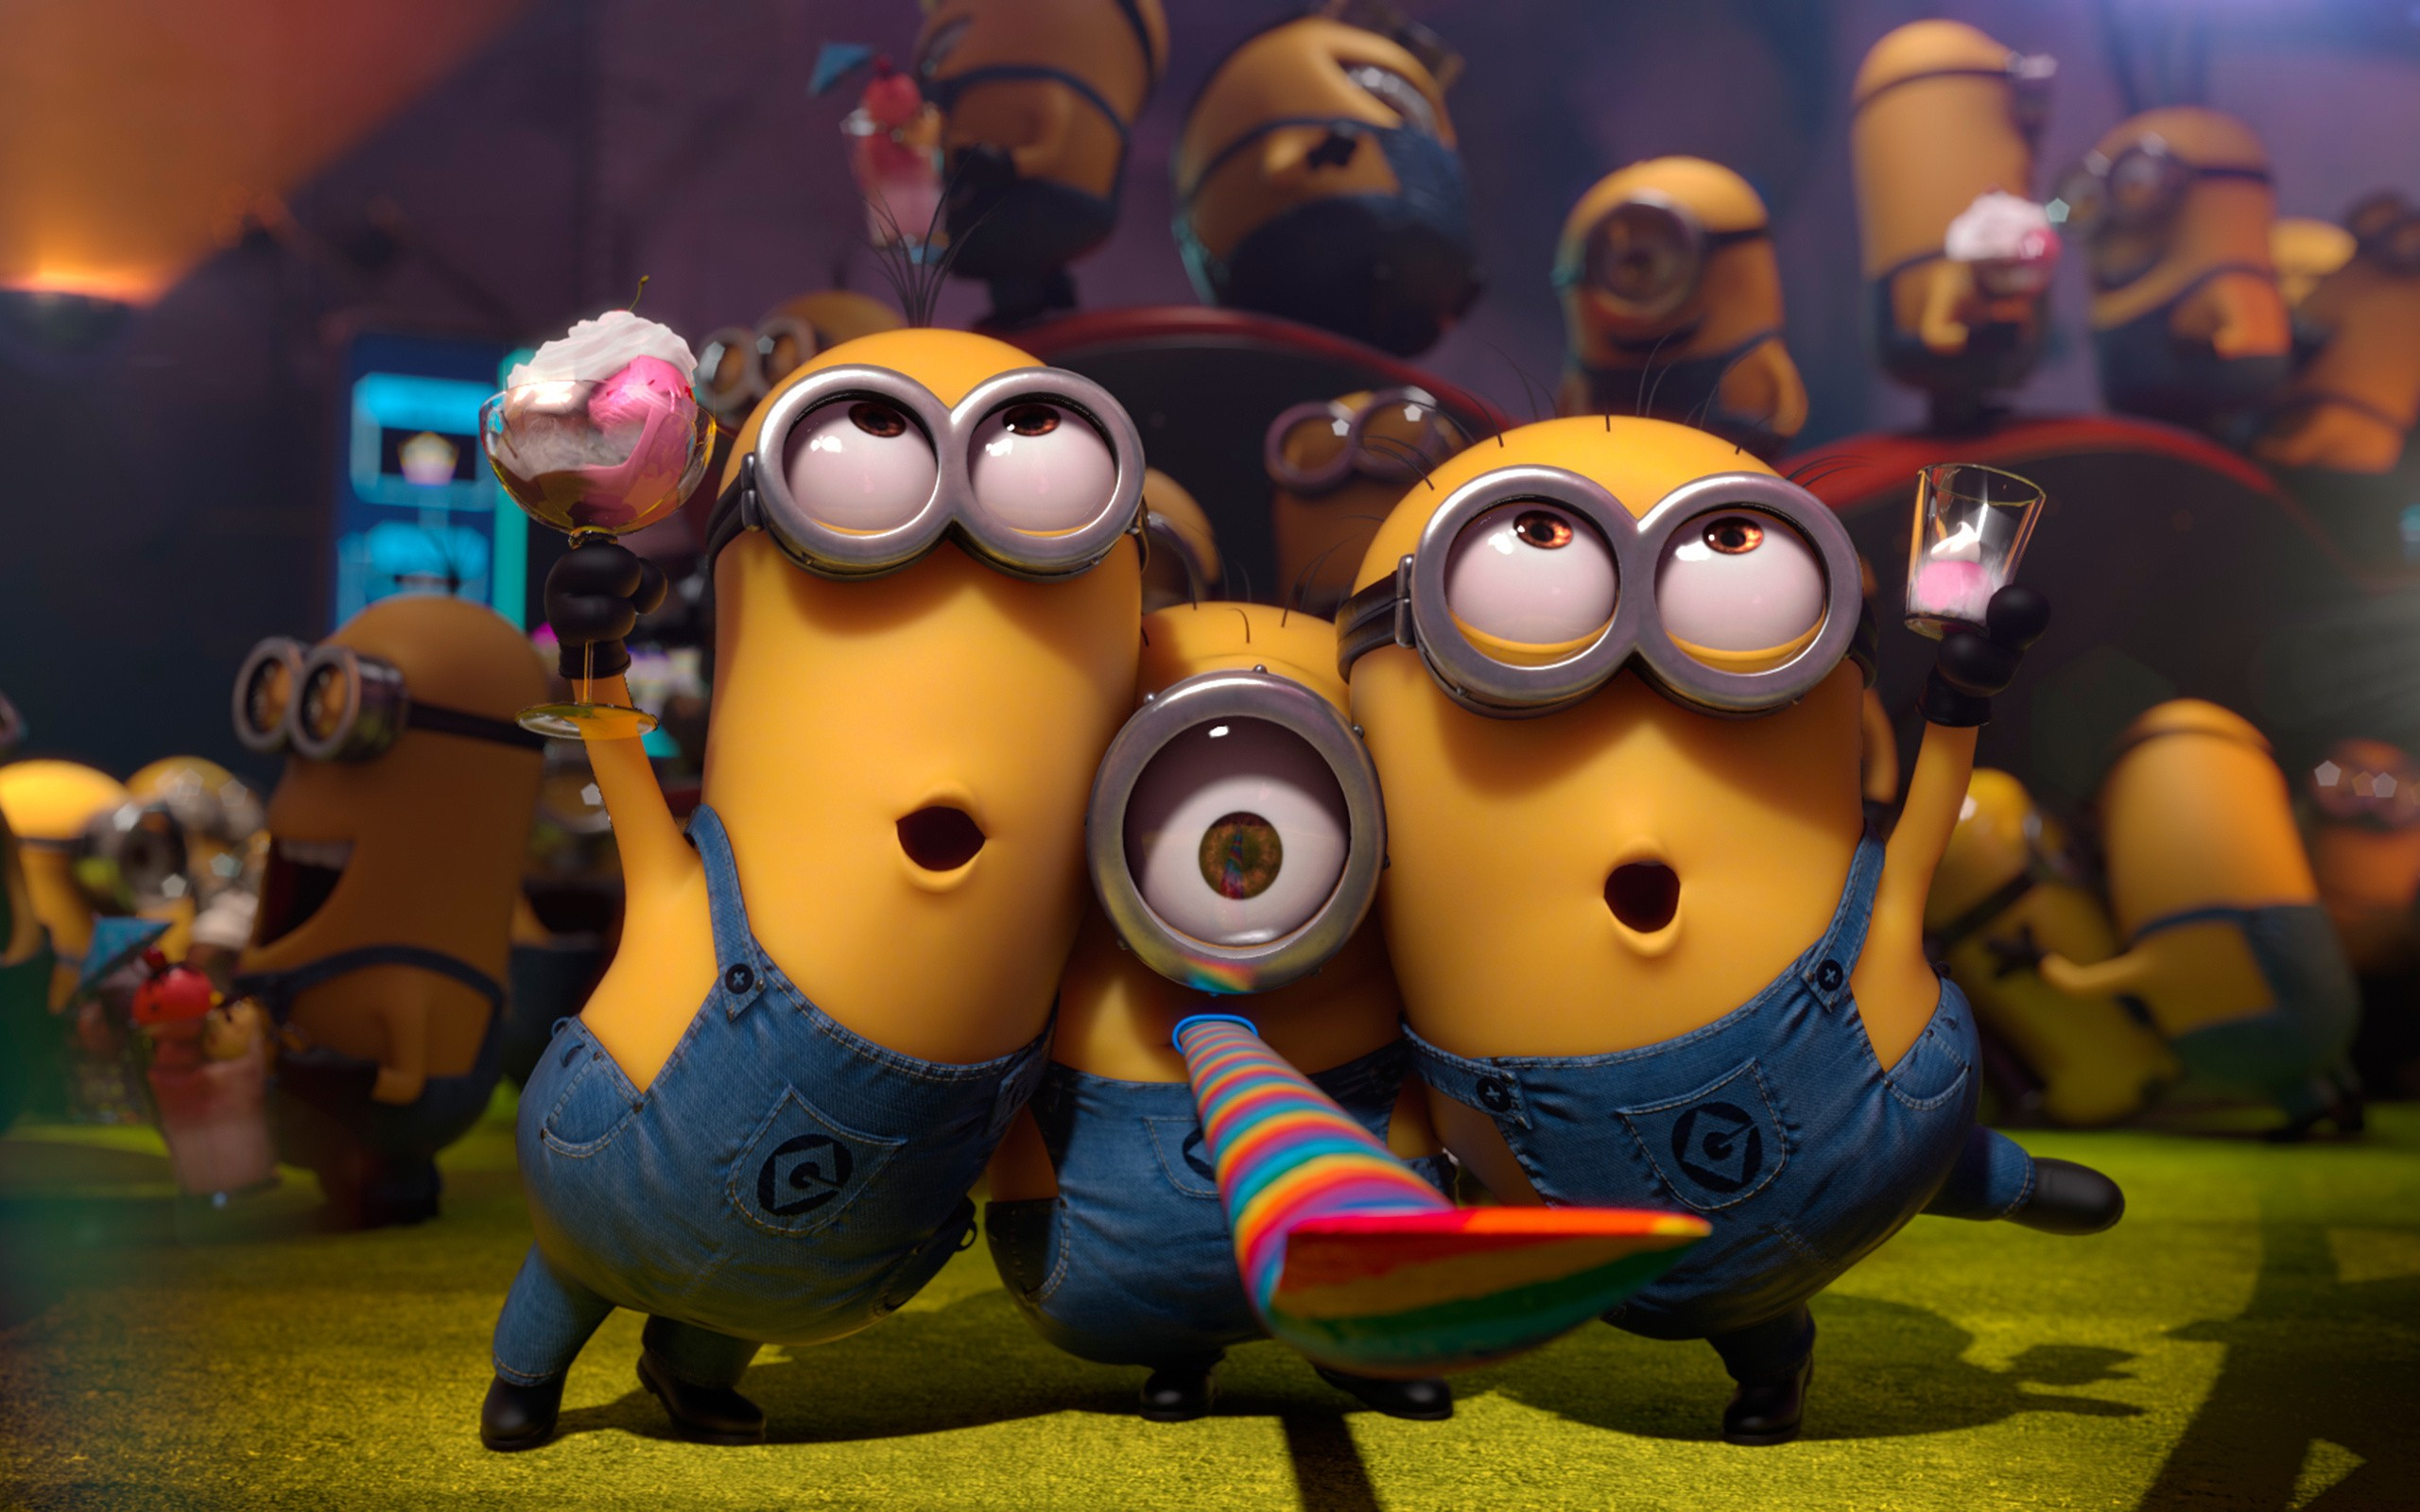 10 Minions Desktop Wallpapers 2560x1600